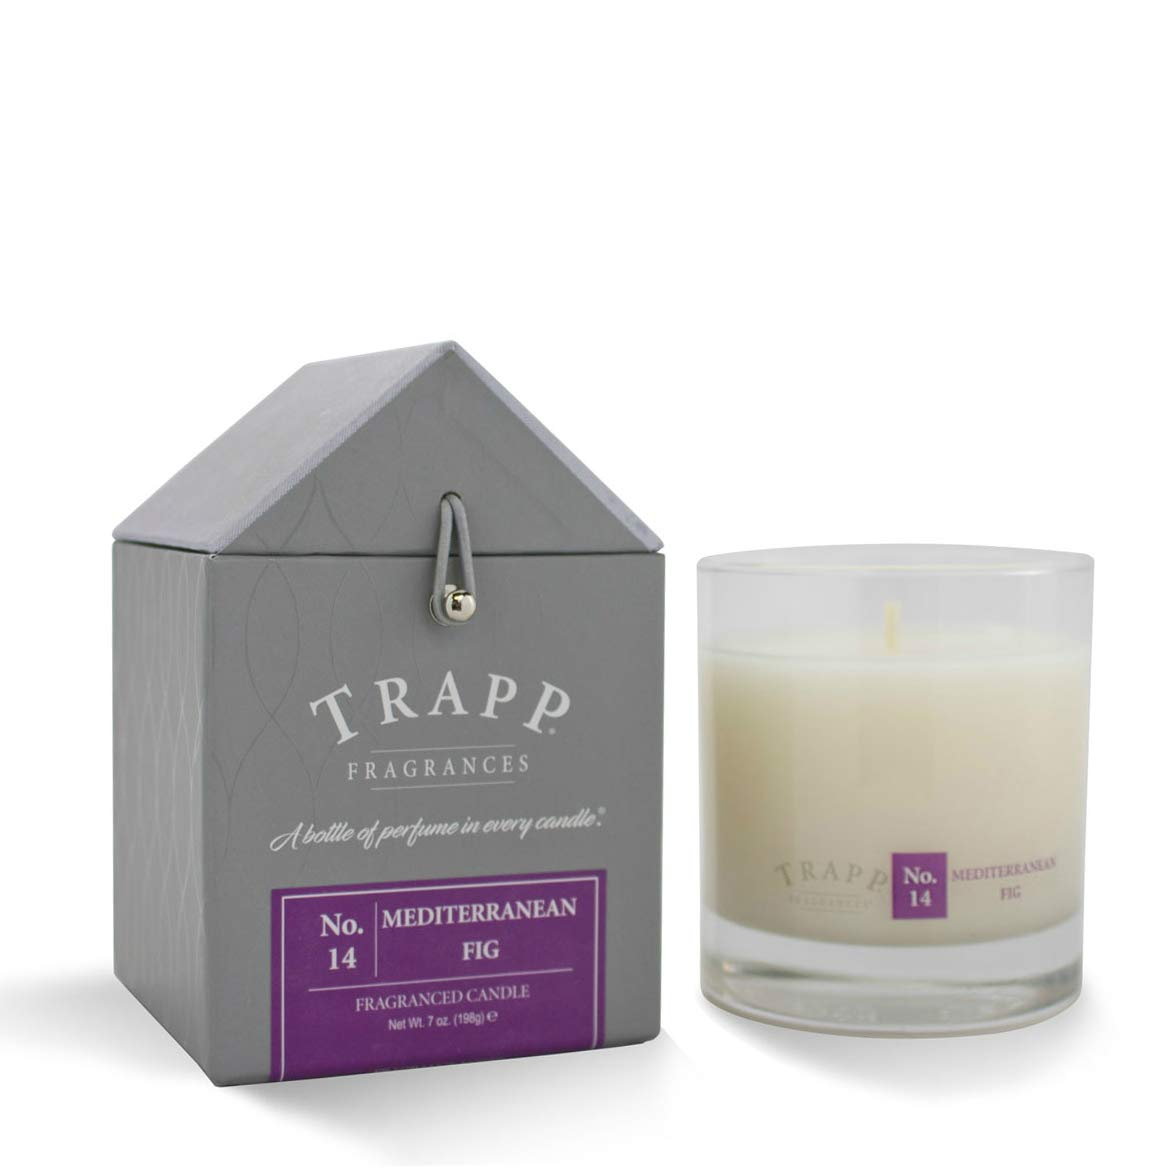 Trapp Signature Home Collection No. 14 Mediterranean Fig Poured Scented Candle, 7-Ounce